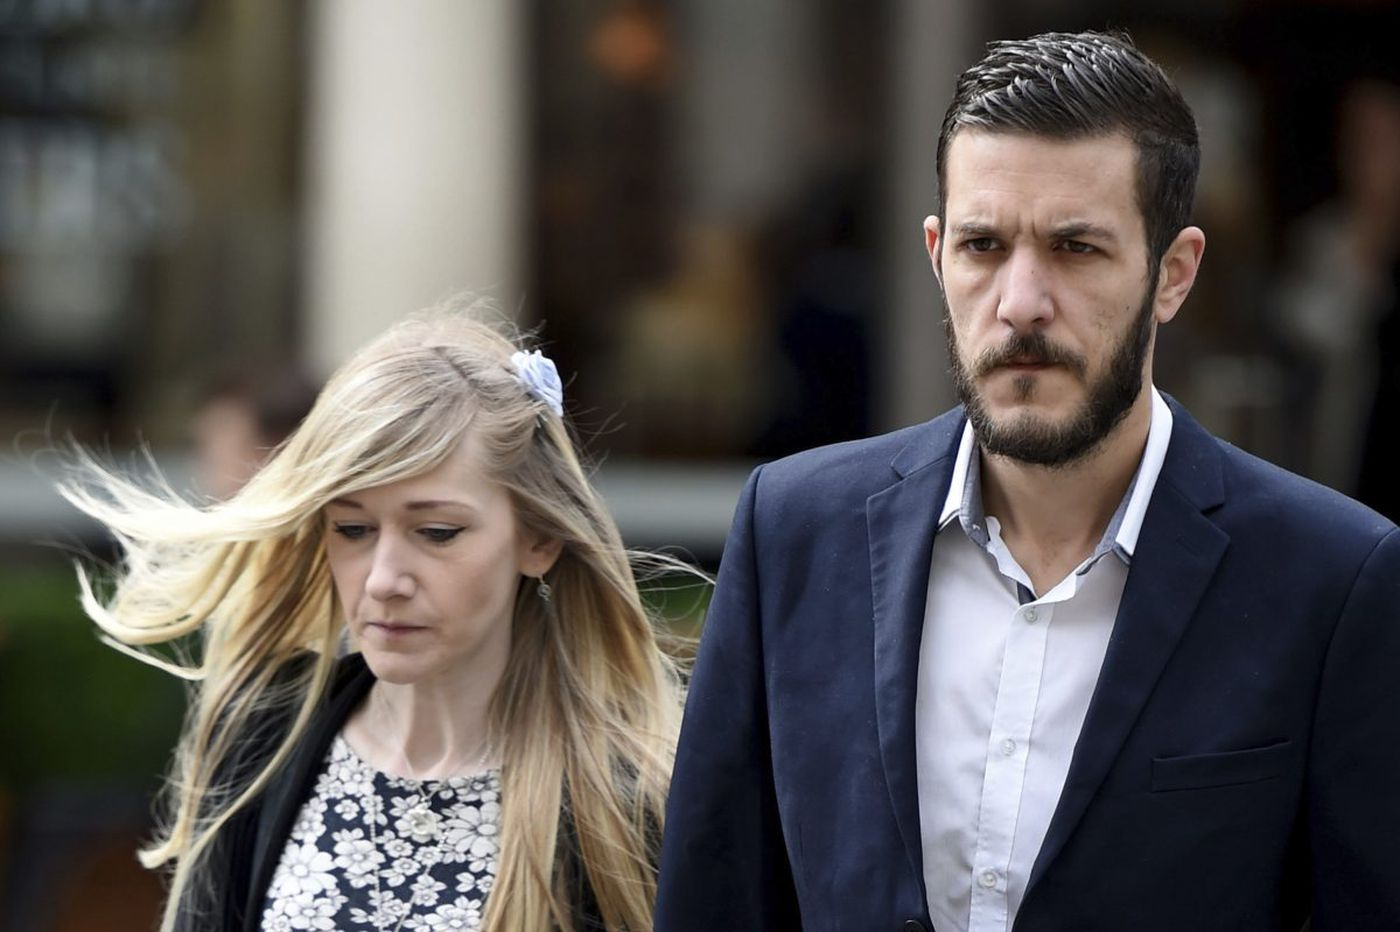 The tragedy of Charlie Gard